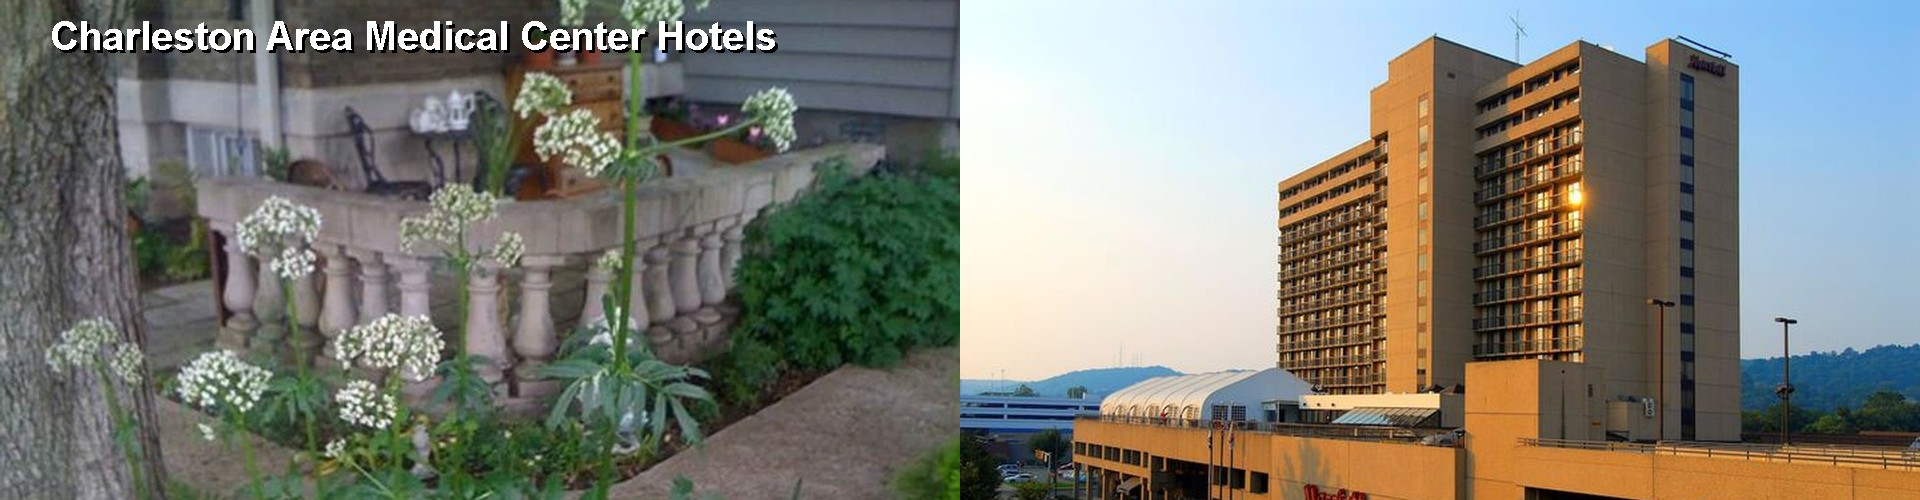 5 Best Hotels near Charleston Area Medical Center